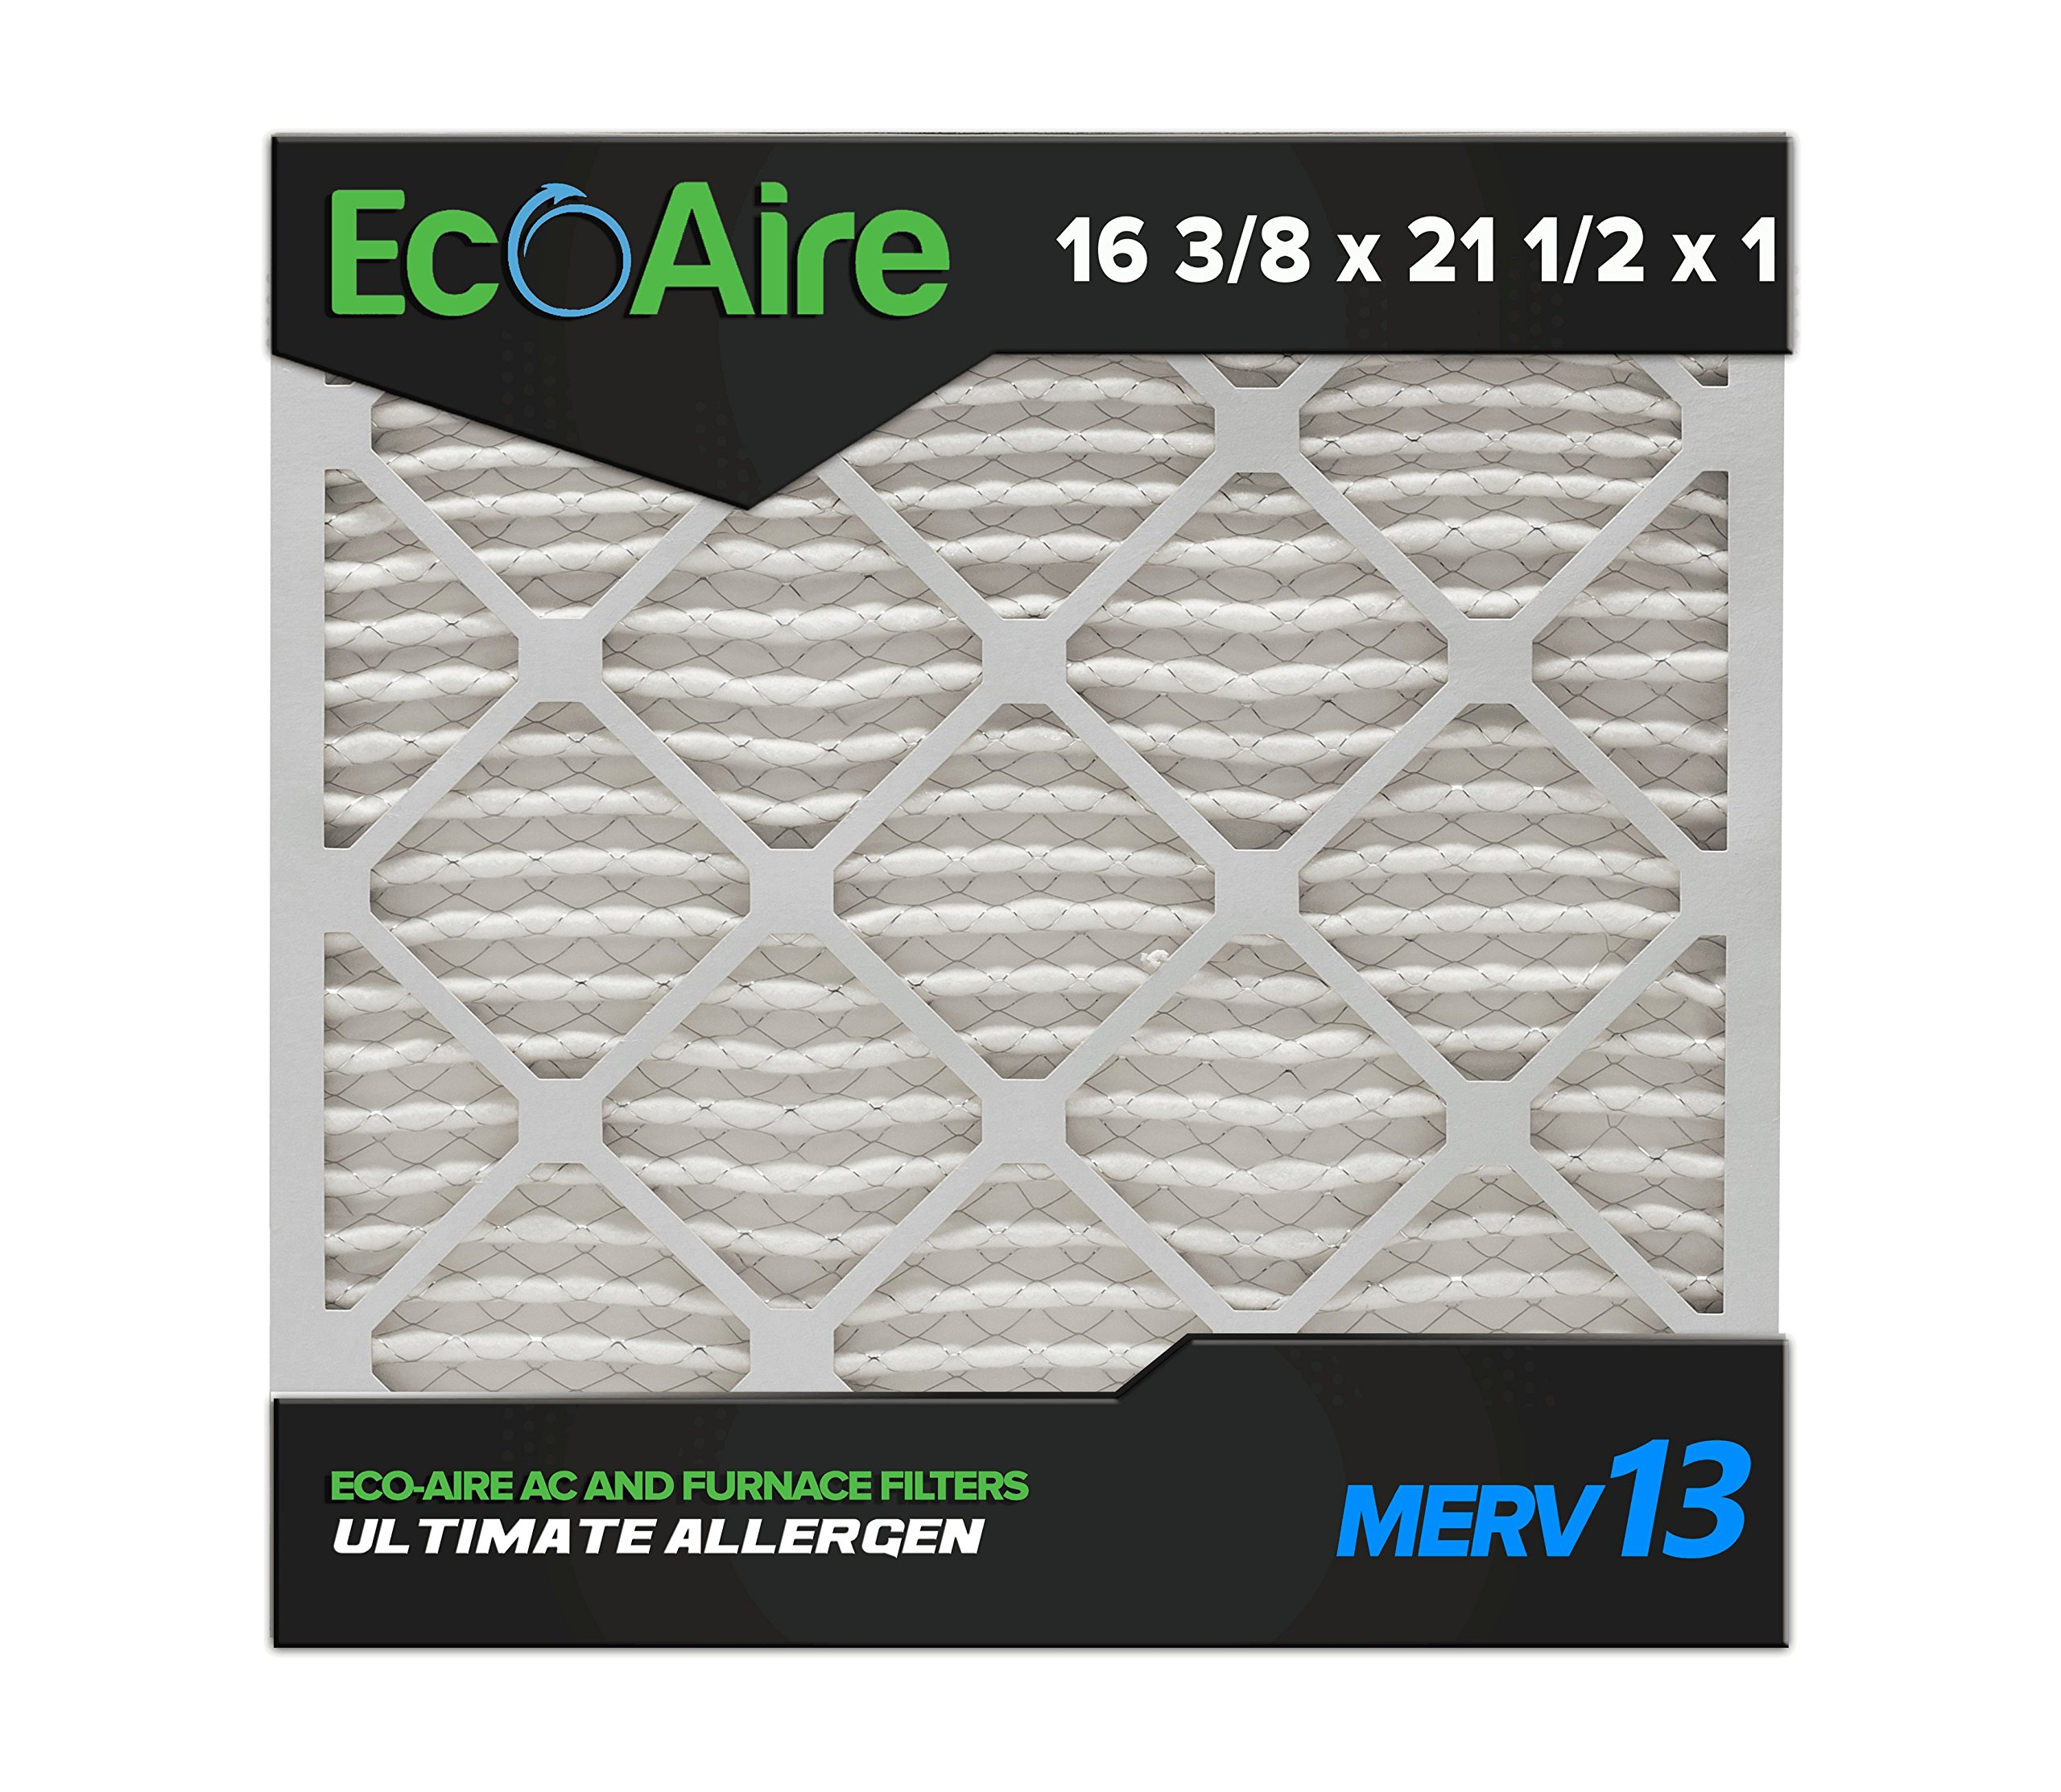 Eco-Aire 16 3/8x21 1/2x1 MERV 13, Pleated Air Filter, 16 3/8 x 21 1/2 x 1, Box of 6, Made in the USA